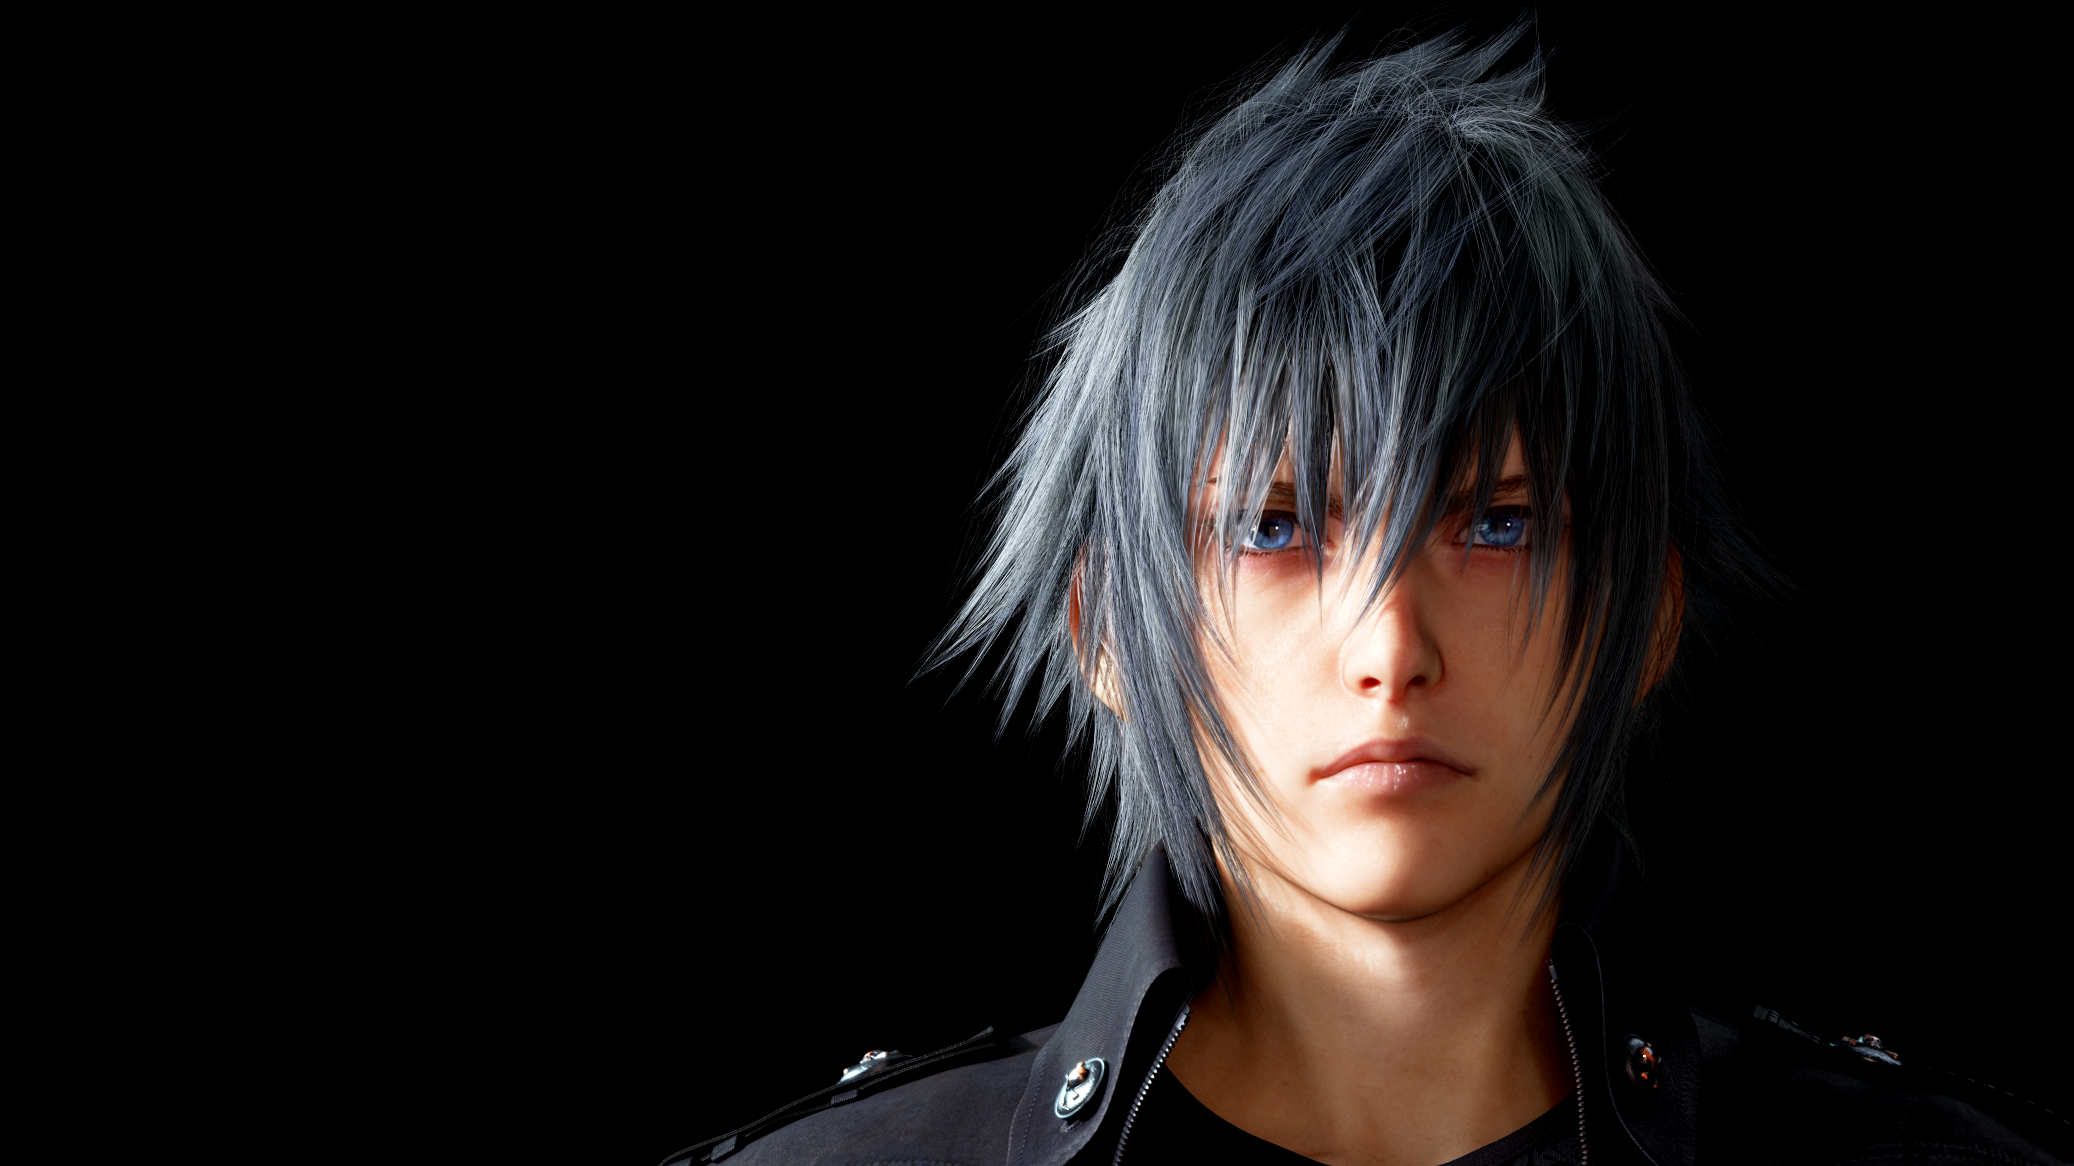 Final Fantasy Xv Wallpapers The Best 79 Images In 2018: Final Fantasy XV Images Noctis Wallpaper 1 HD Wallpaper